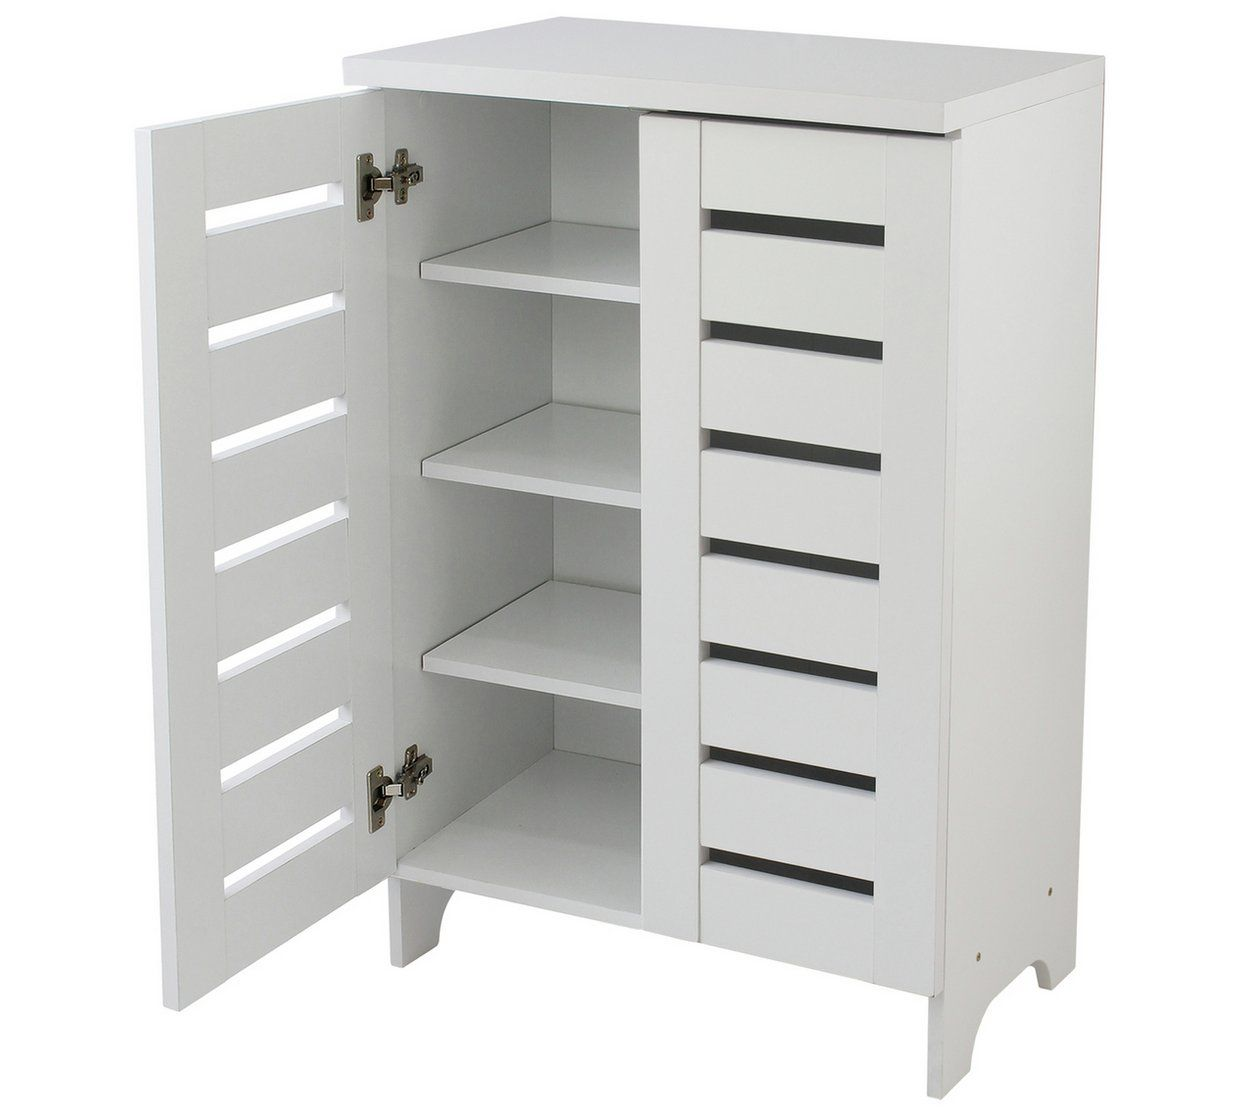 Buy Argos Home Slatted 2 Door Shoe Storage Cabinet White Shoe Storage Argos Shoe Storage Cabinet Entryway Closet Shoe Storage Shoe Storage Cabinet